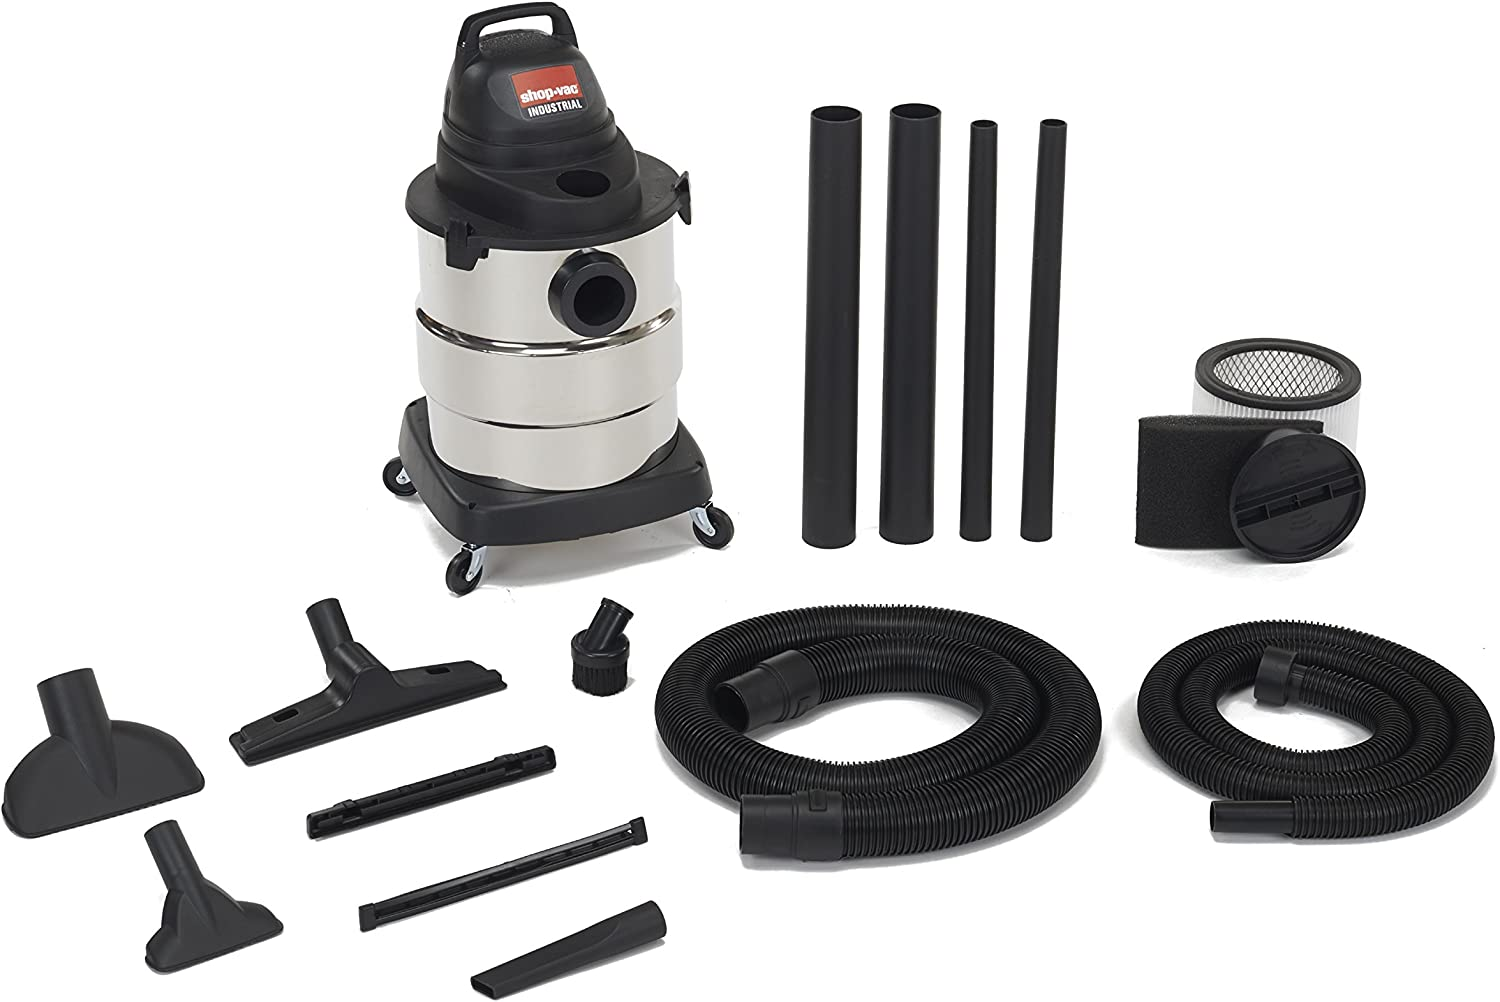 Shop-Vac 6000110 4.5 Peak HP Stainless Steel Wet Dry Vacuum, 6-Gallon 71eNmbMZmtLSL1500_